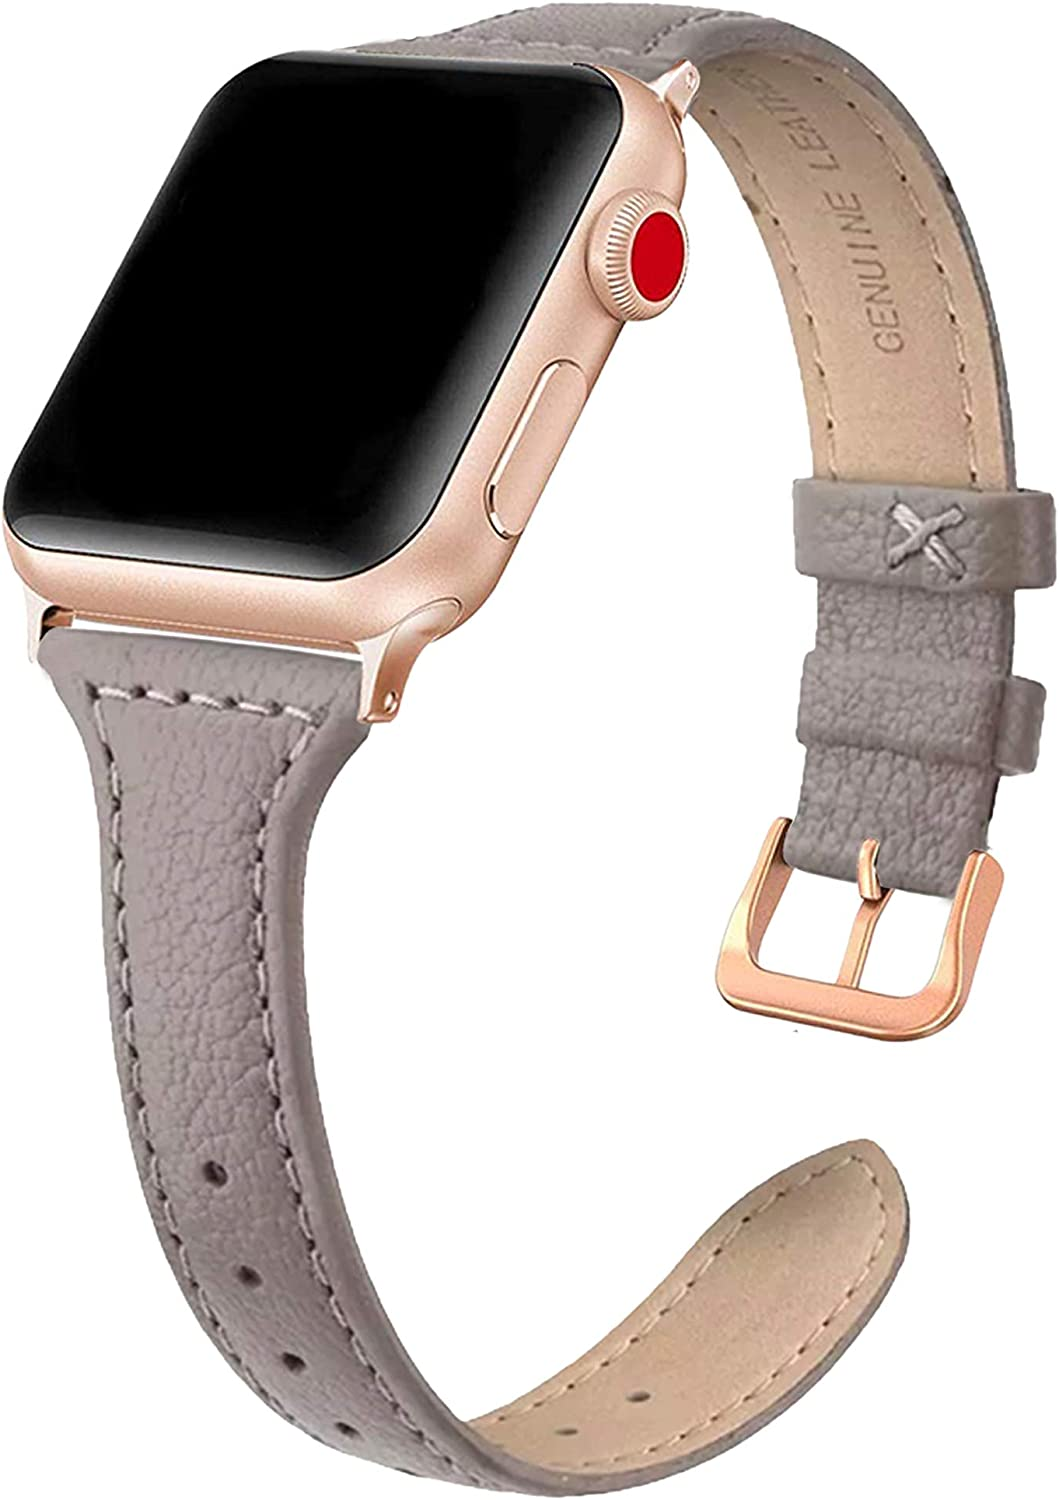 Leather Bands Compatible with Apple Watch 38mm 40mm 42mm 44mm, Slim Leather Band, Thin Watch Band, iWatch Series 5, 4, 3, 2, 1, Rose Gold Adaptor, by 1302 Watch Co. (Taupe, 38mm/40mm)